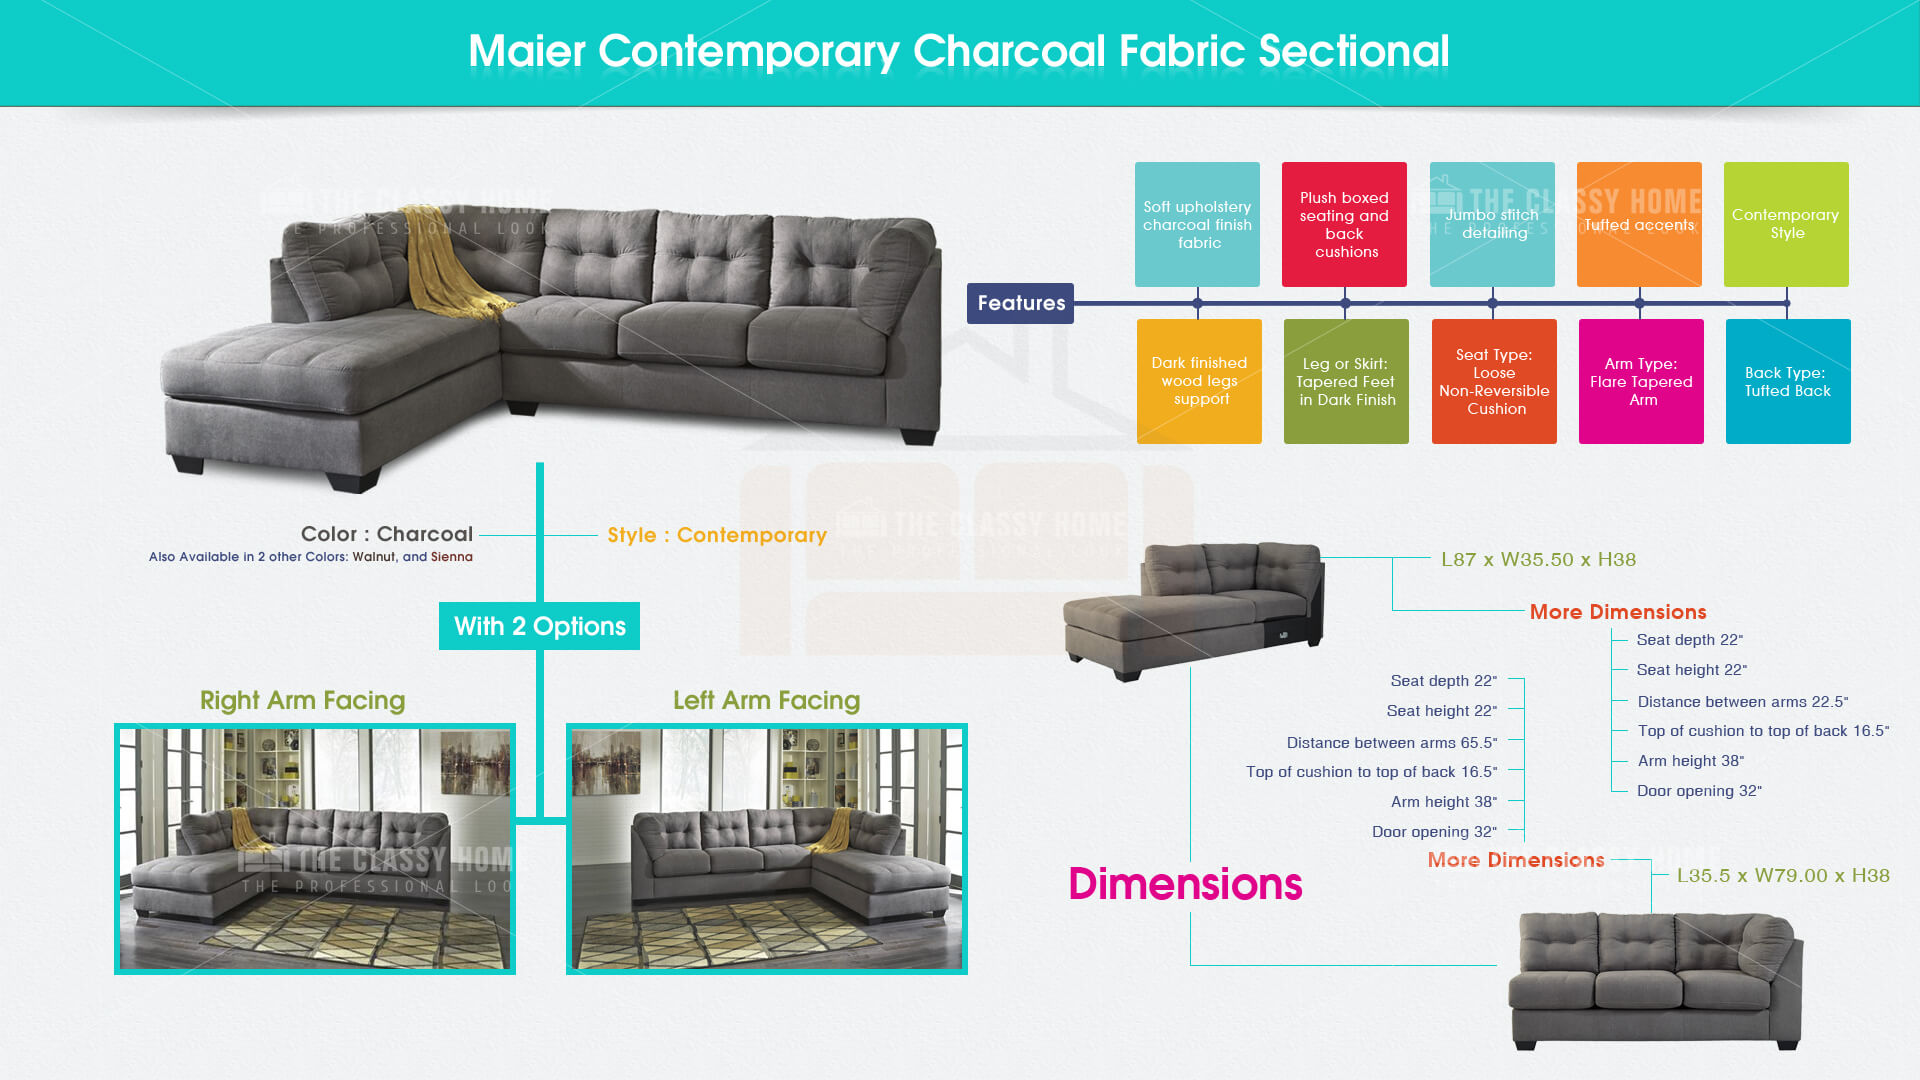 Ashley Furniture Maier Charcoal RAF Chaise Sectional